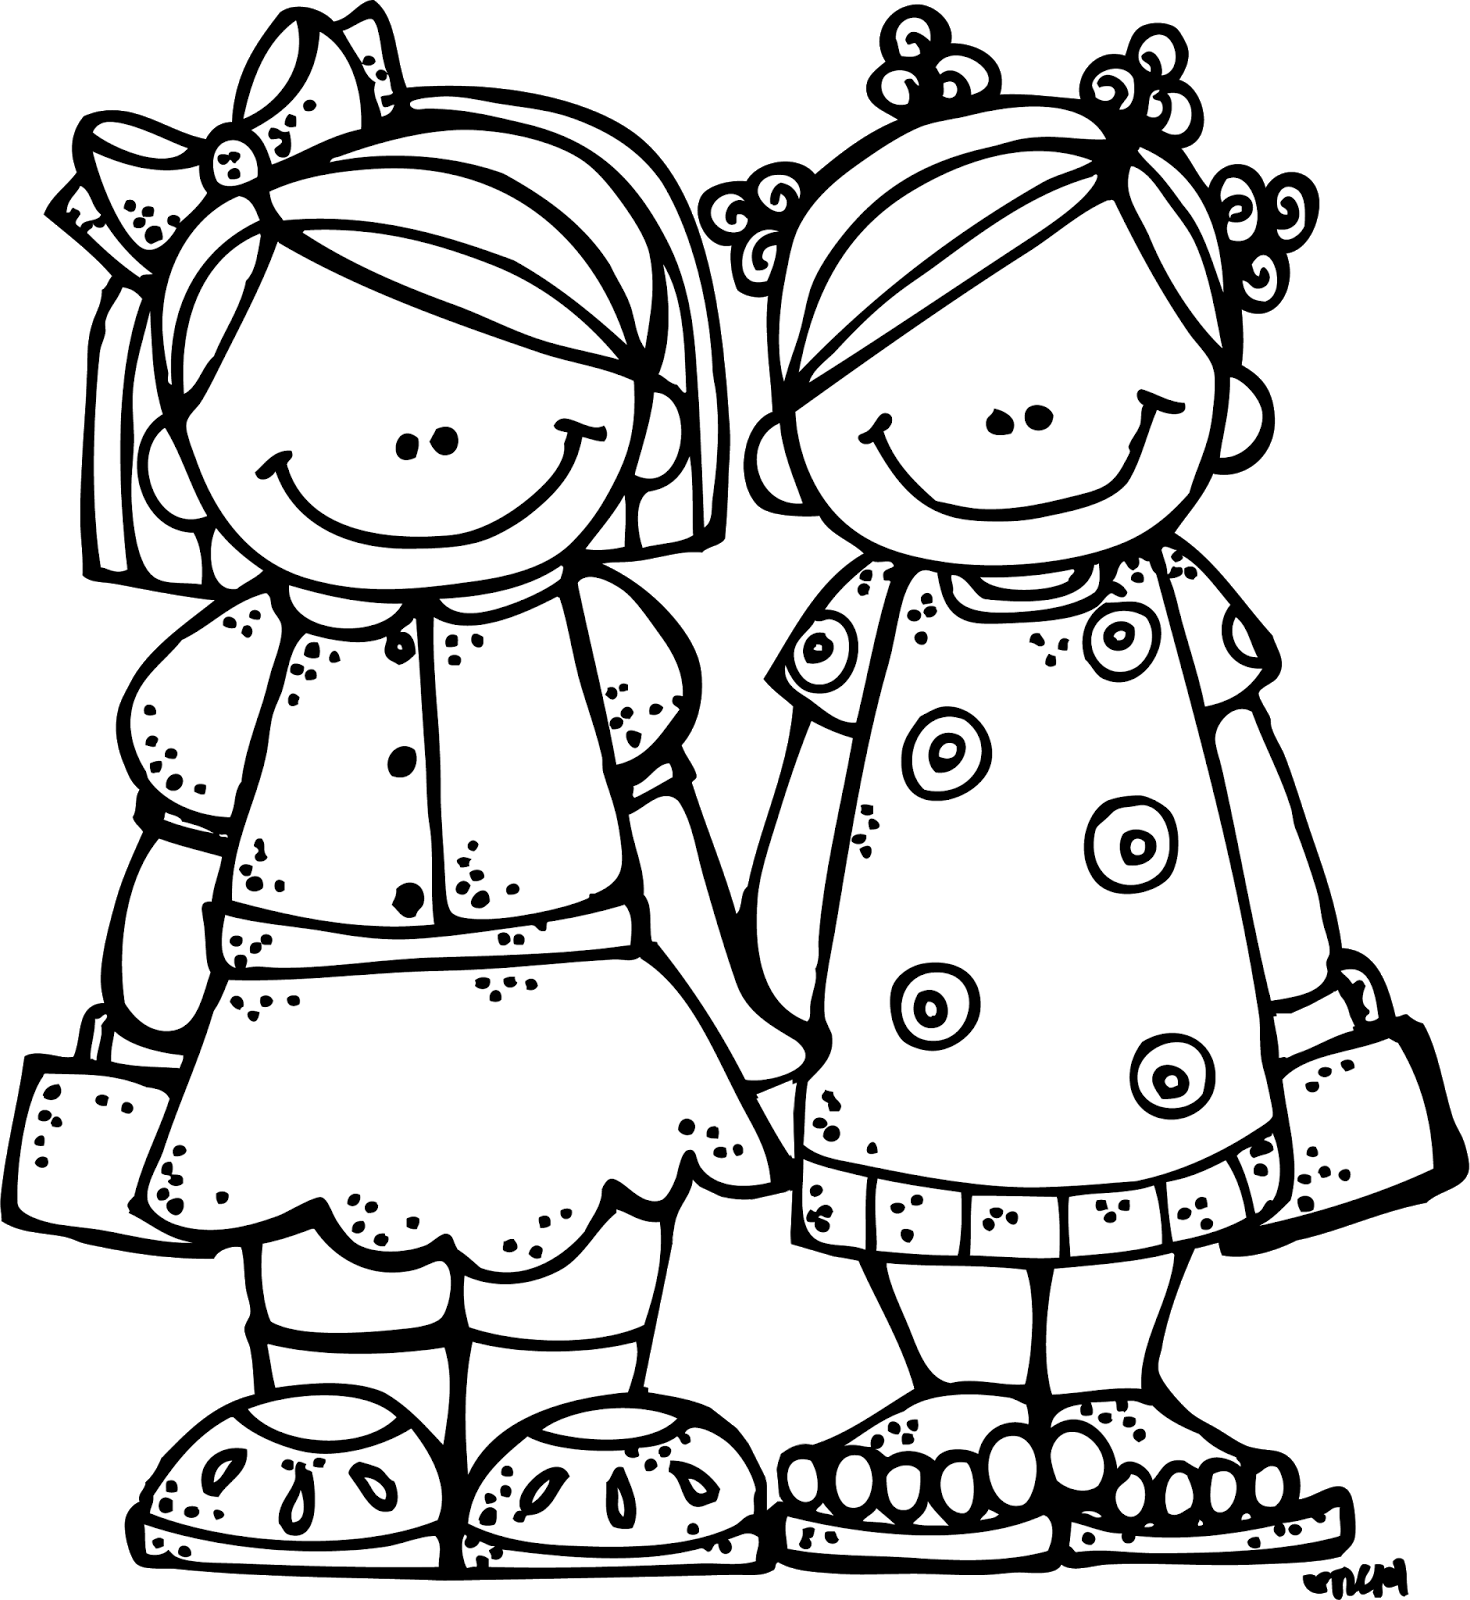 Free Best Friend Clipart Black And White, Download Free Clip.